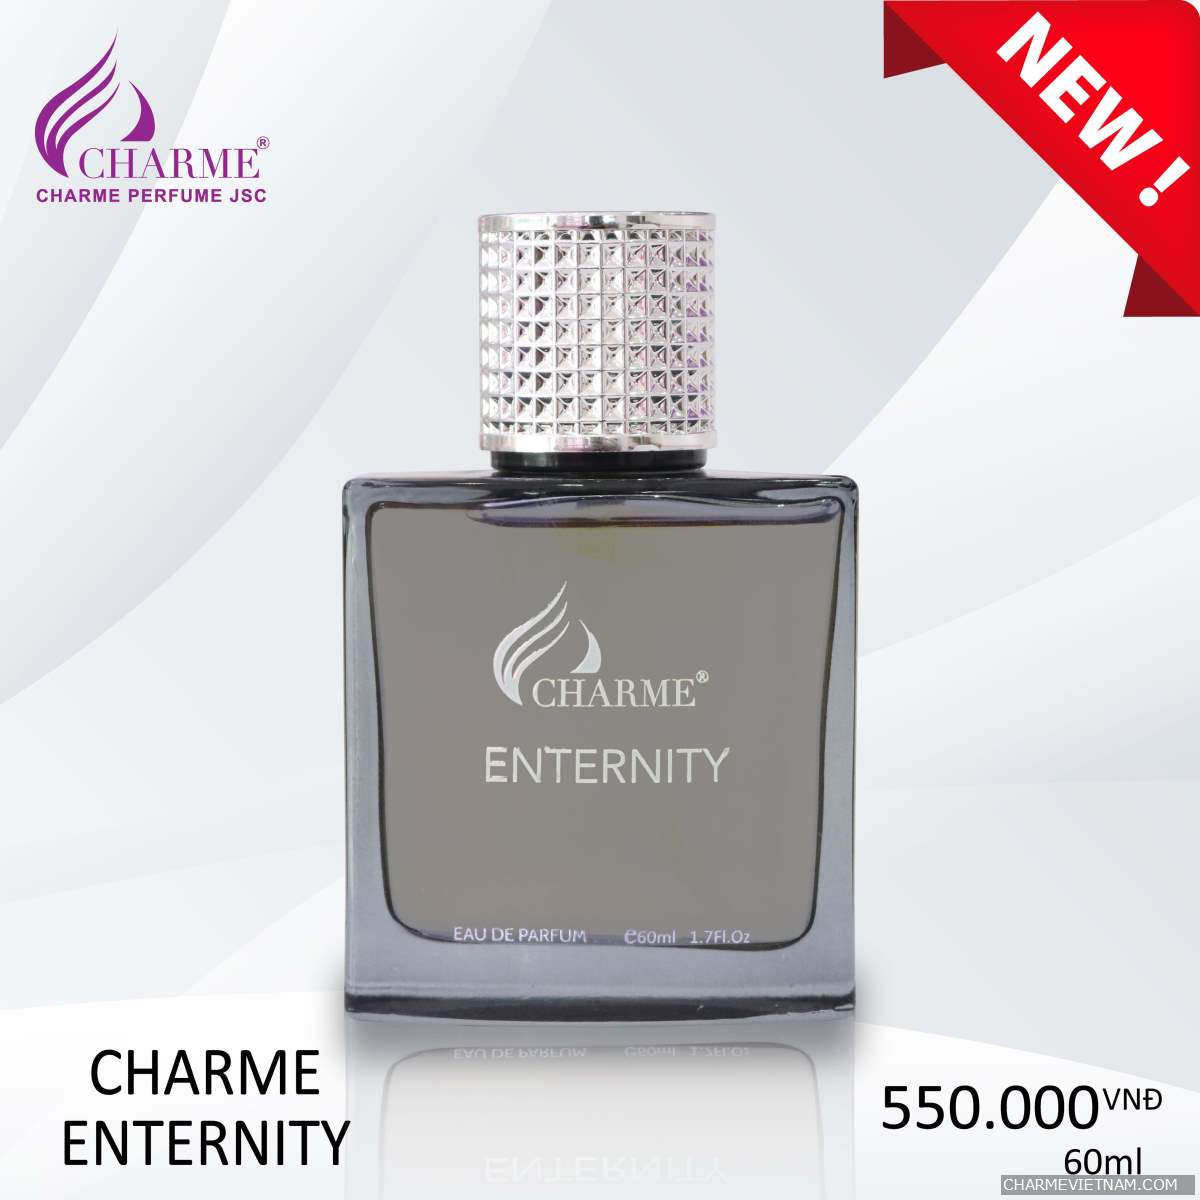 Charme Enternity 60ml